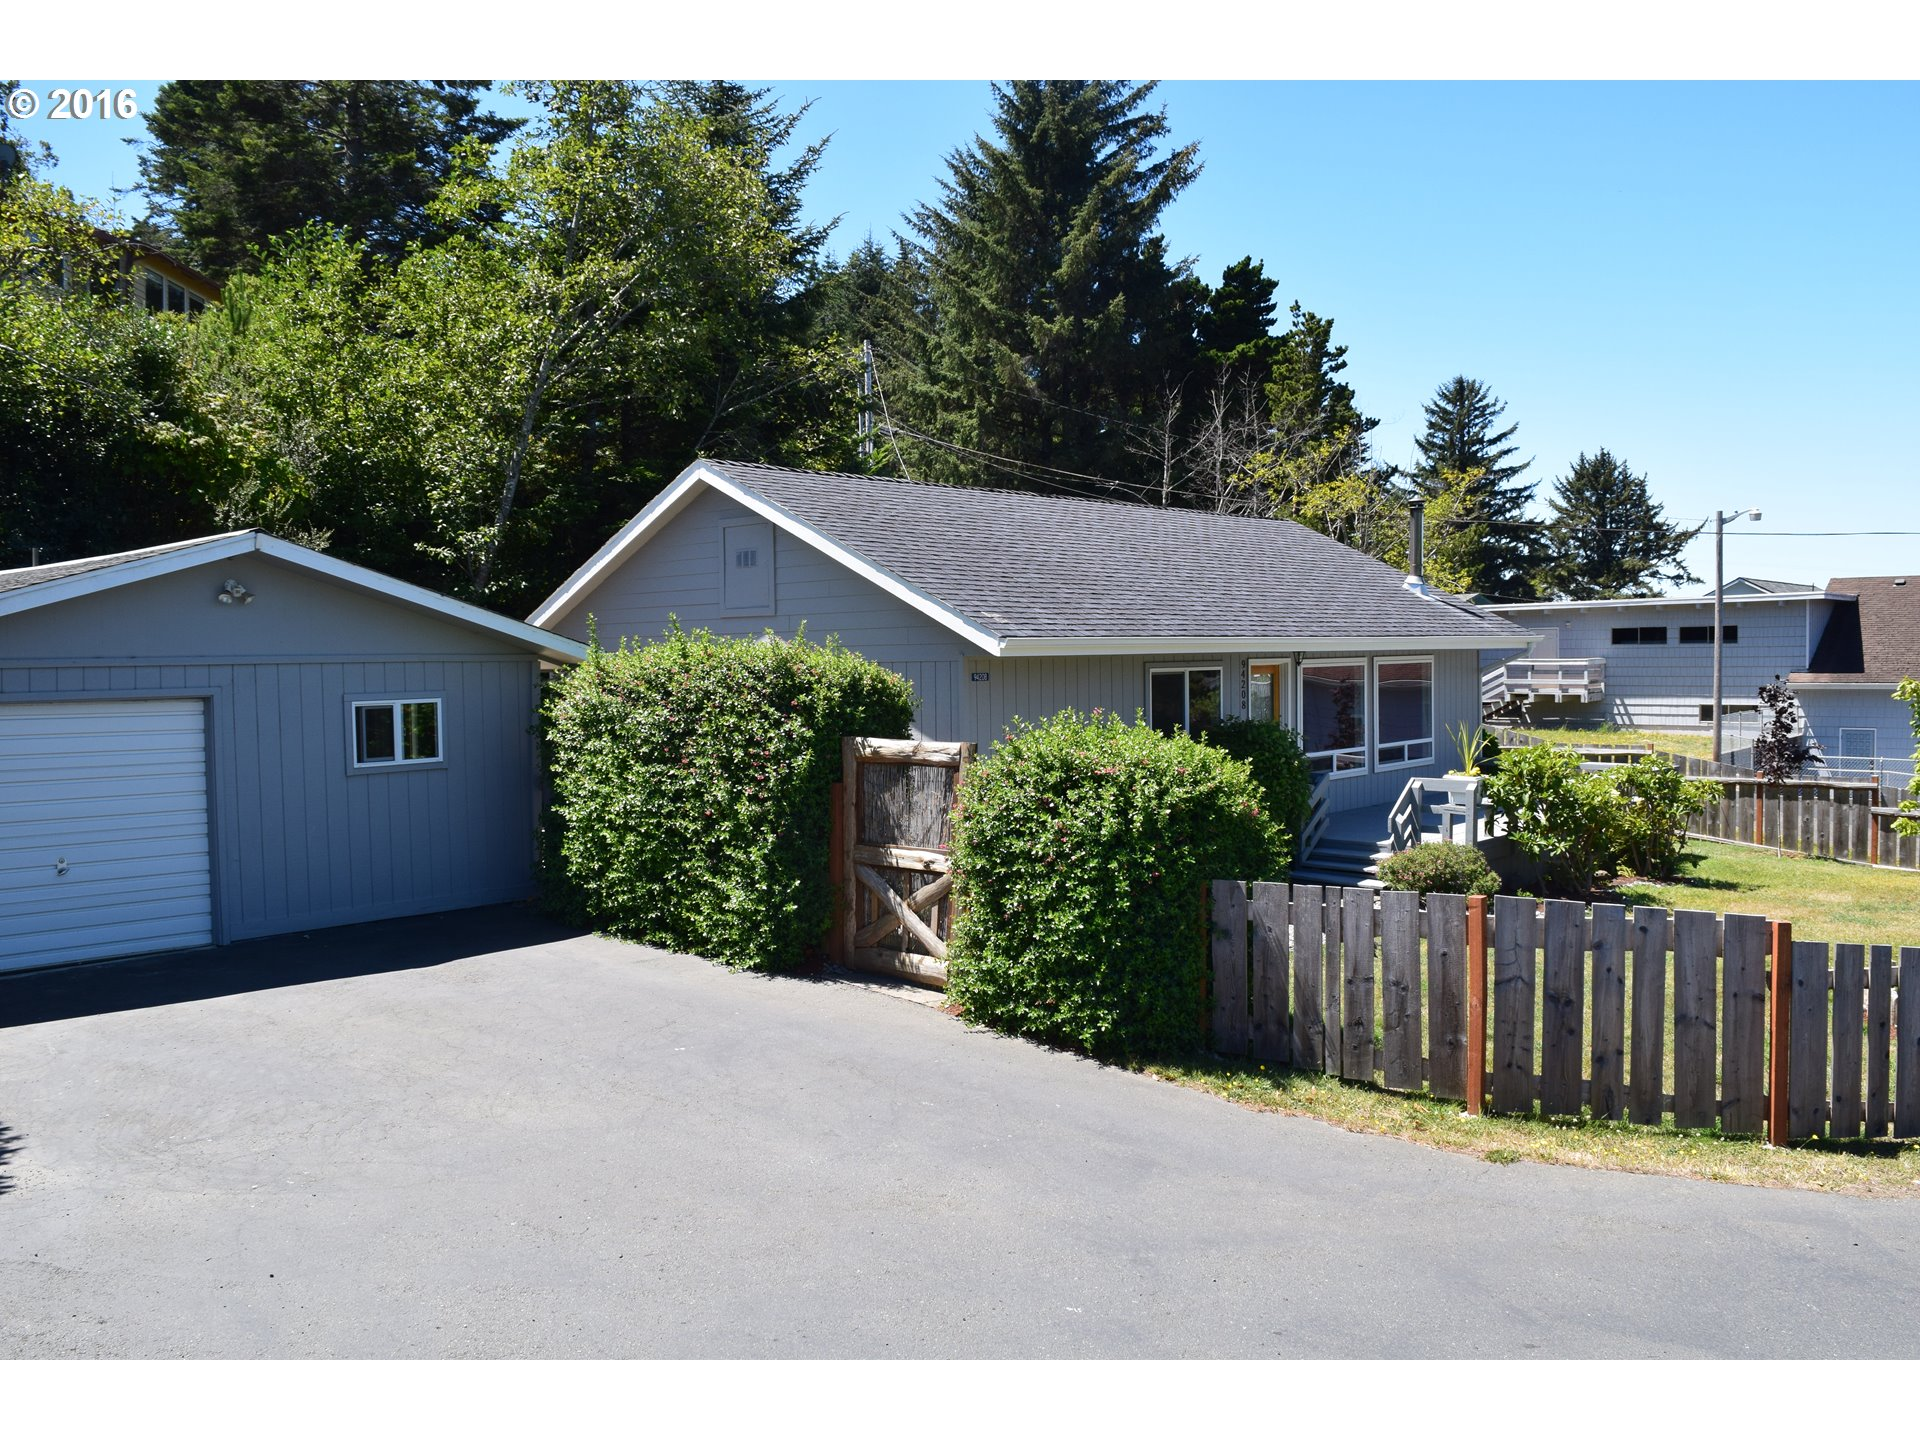 94208 TERRACE GARDEN WAY Gold Beach, Brookings Home Listings - Pacific Coastal Real Estate